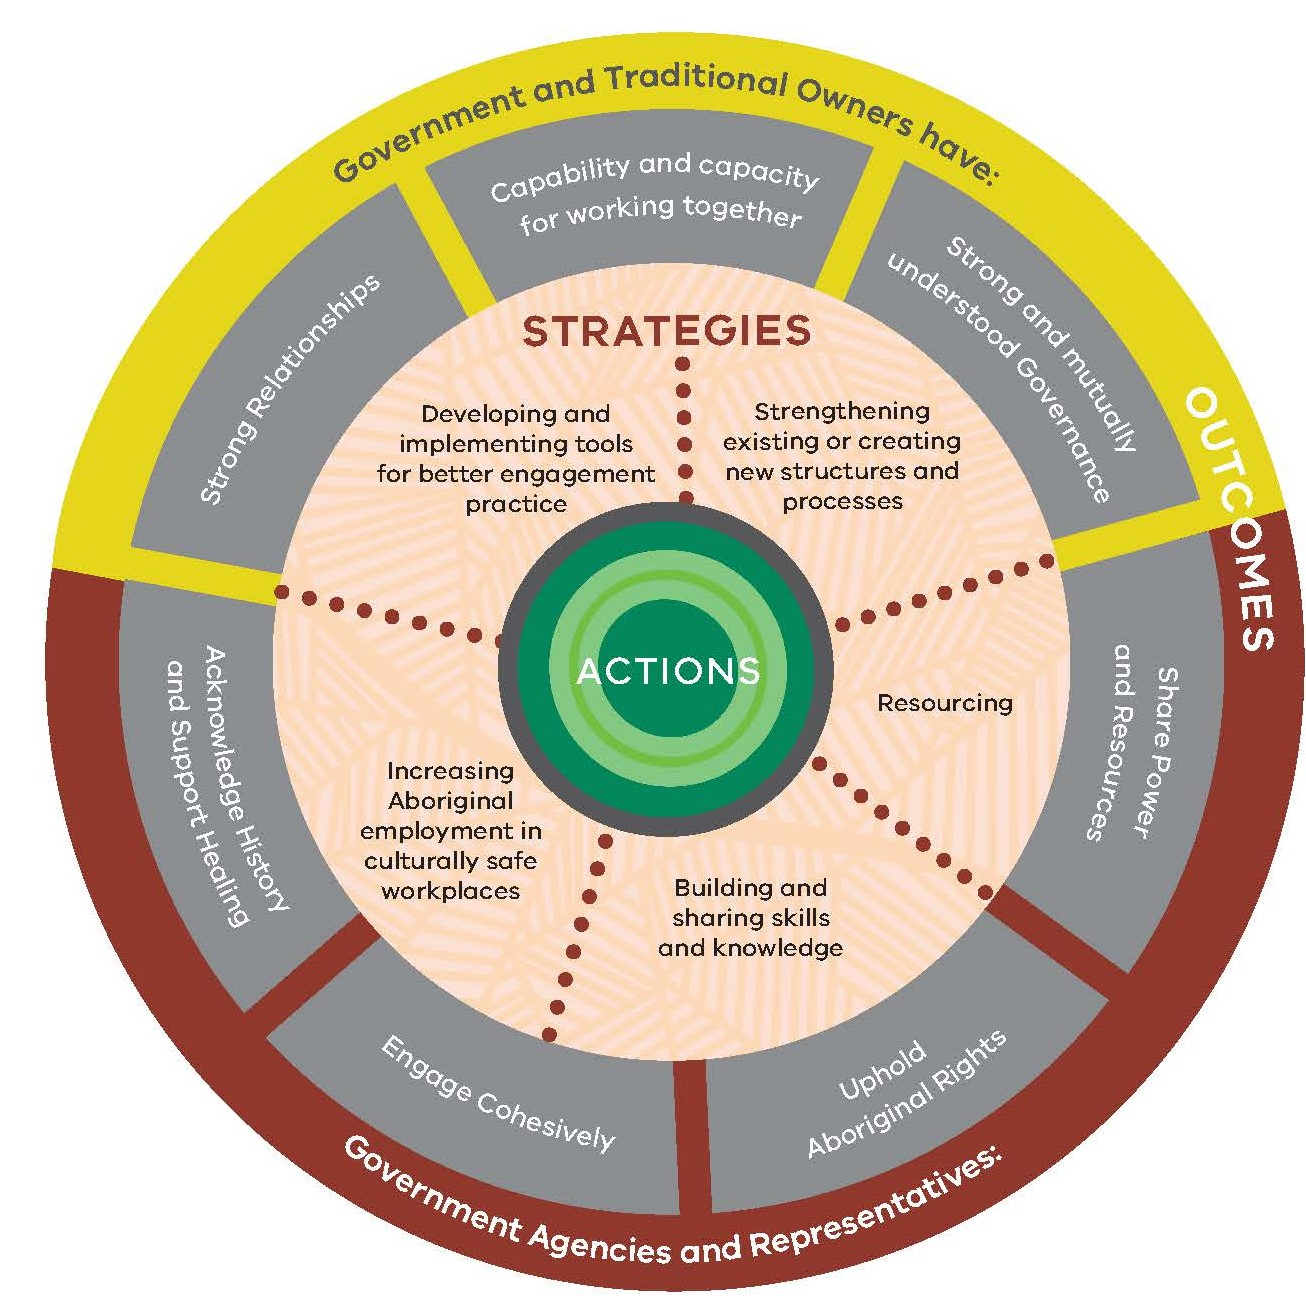 Image showing  7 outcomes: strong relationships; capability and capacity for working together; strong and mutually understood governance; share power and resources; uphold Aboriginal rights; engage cohesively; acknowledge history and support healing